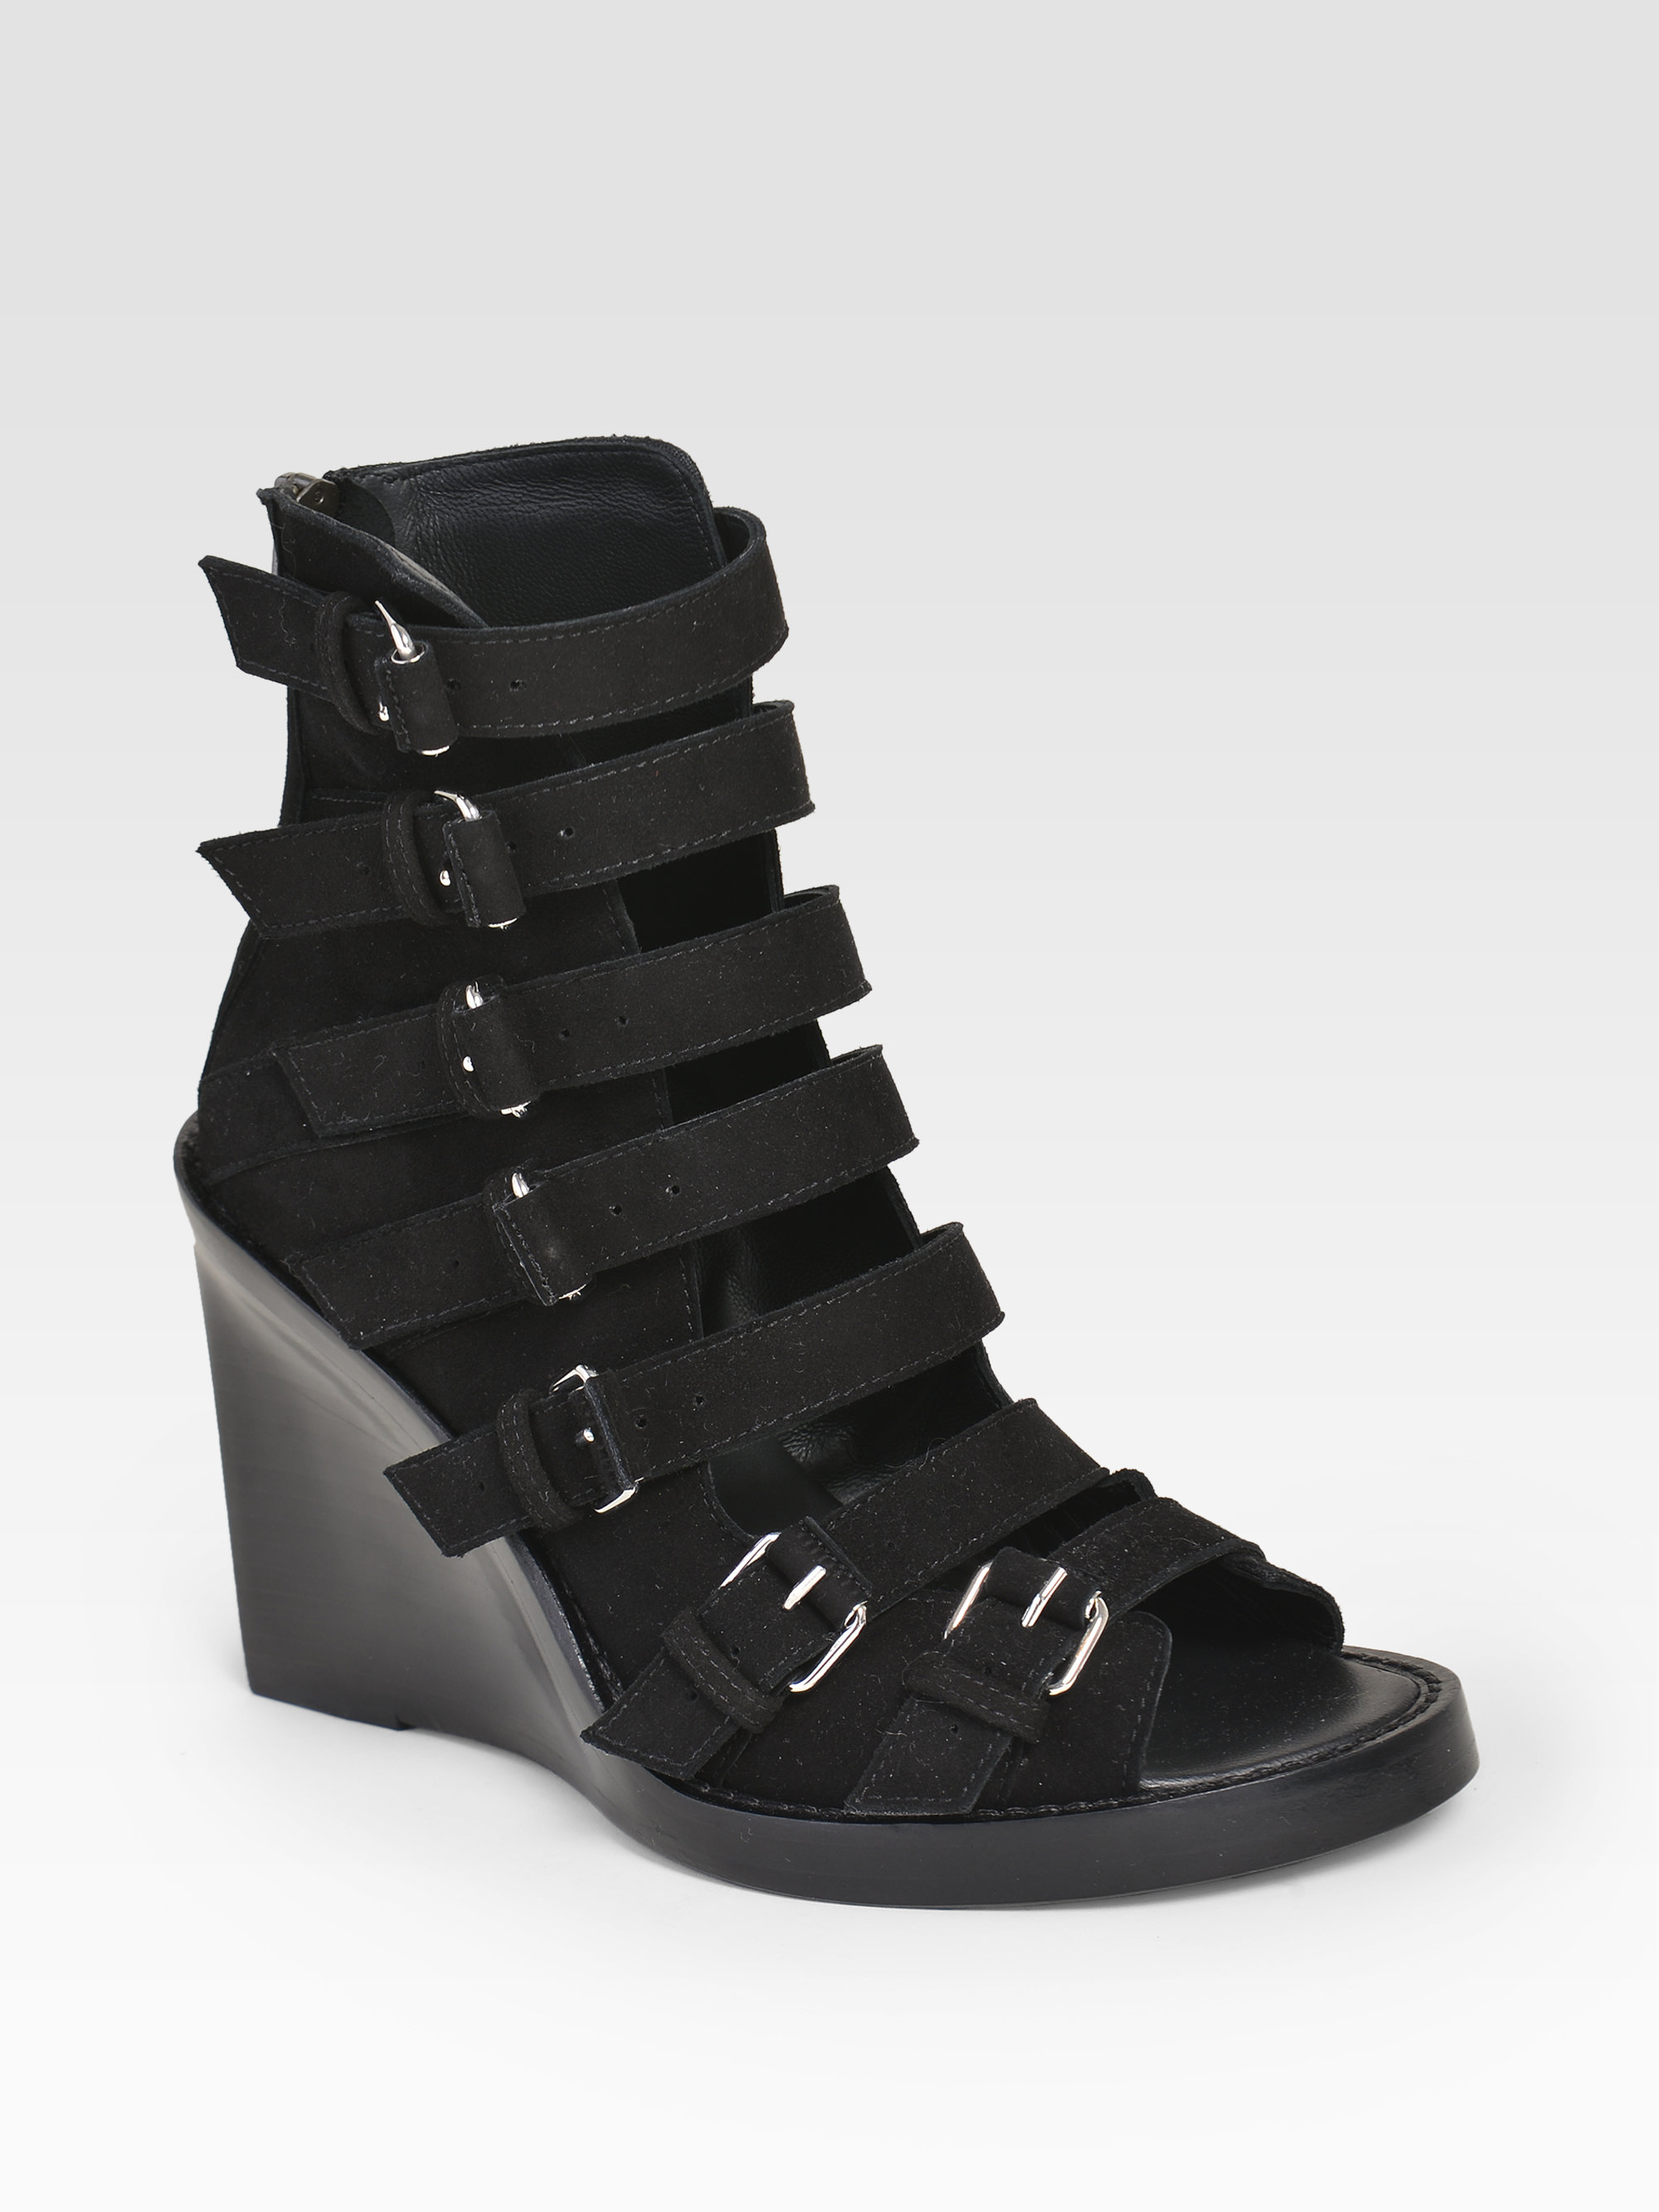 Free Shipping 2018 New ANN DEMEULEMEESTER 55MM LEATHER WEDGES Buy Cheap Best Wholesale 9p4t7h